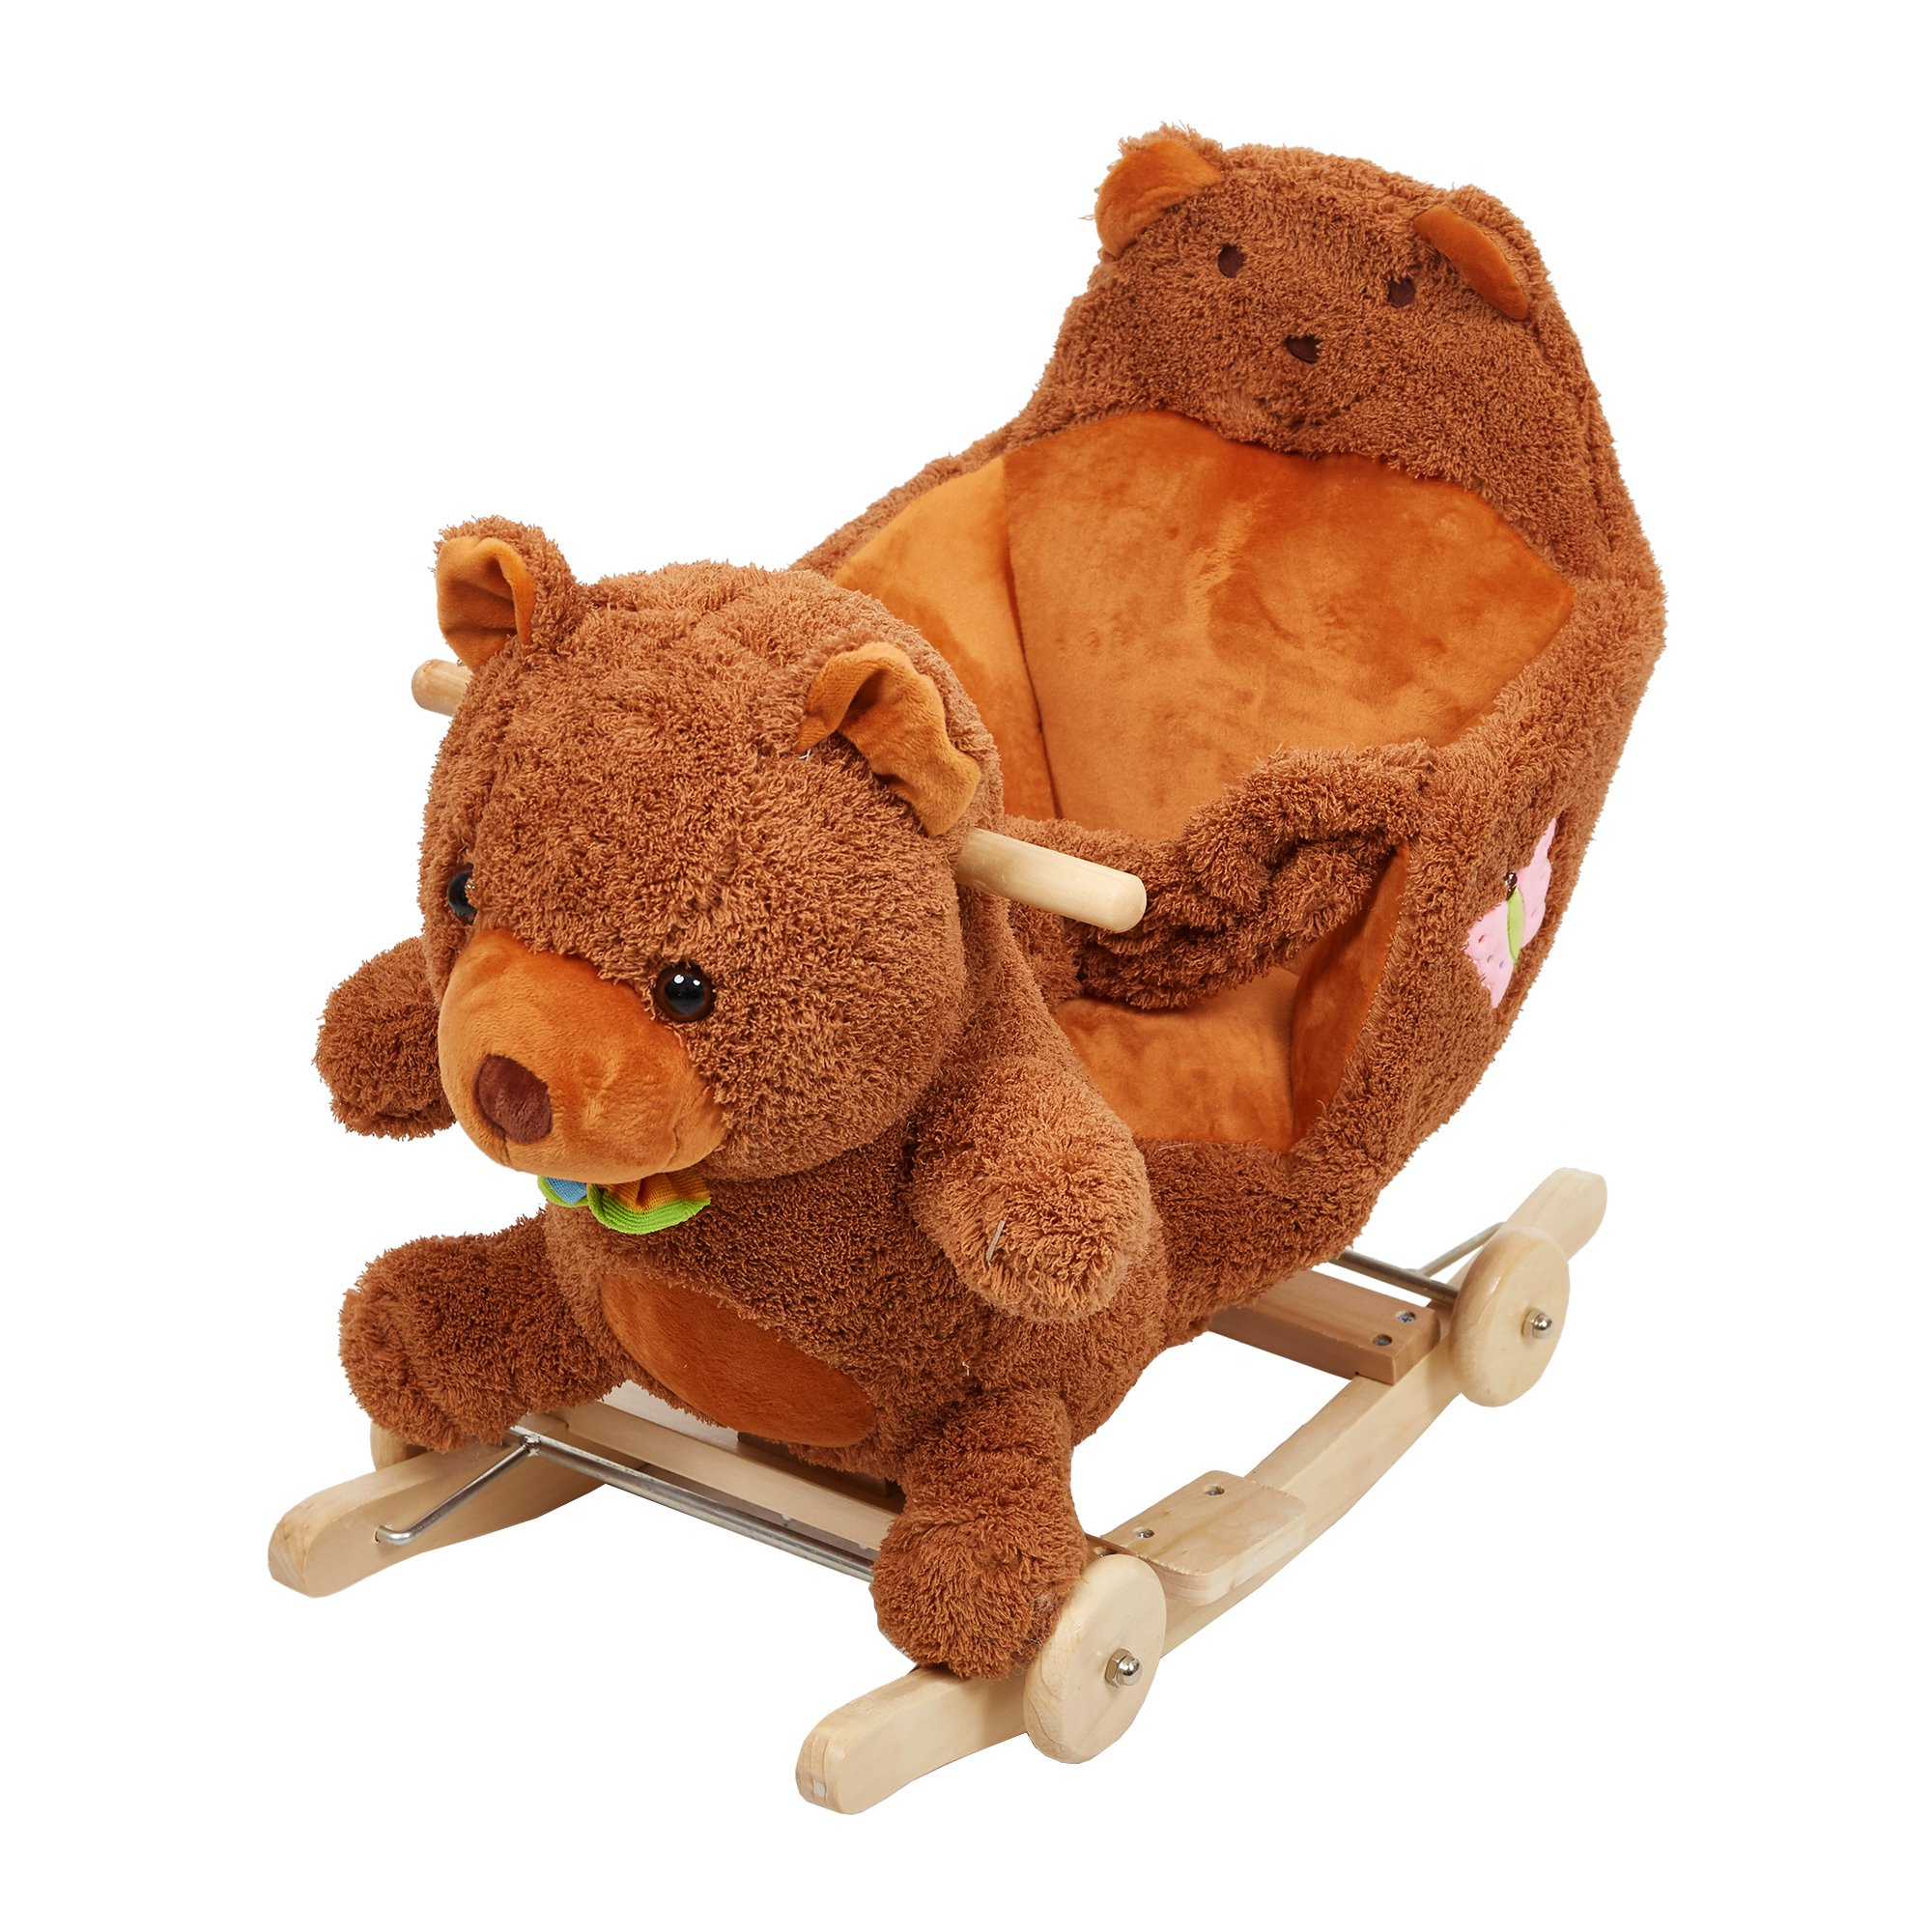 Lucky Tree Rocking Horse Wooden Riding Toys Plush Brown Bear Ride on Toy with Wheels for kids 18 Months-4 Years,Bear by Lucky Tree (Image #7)